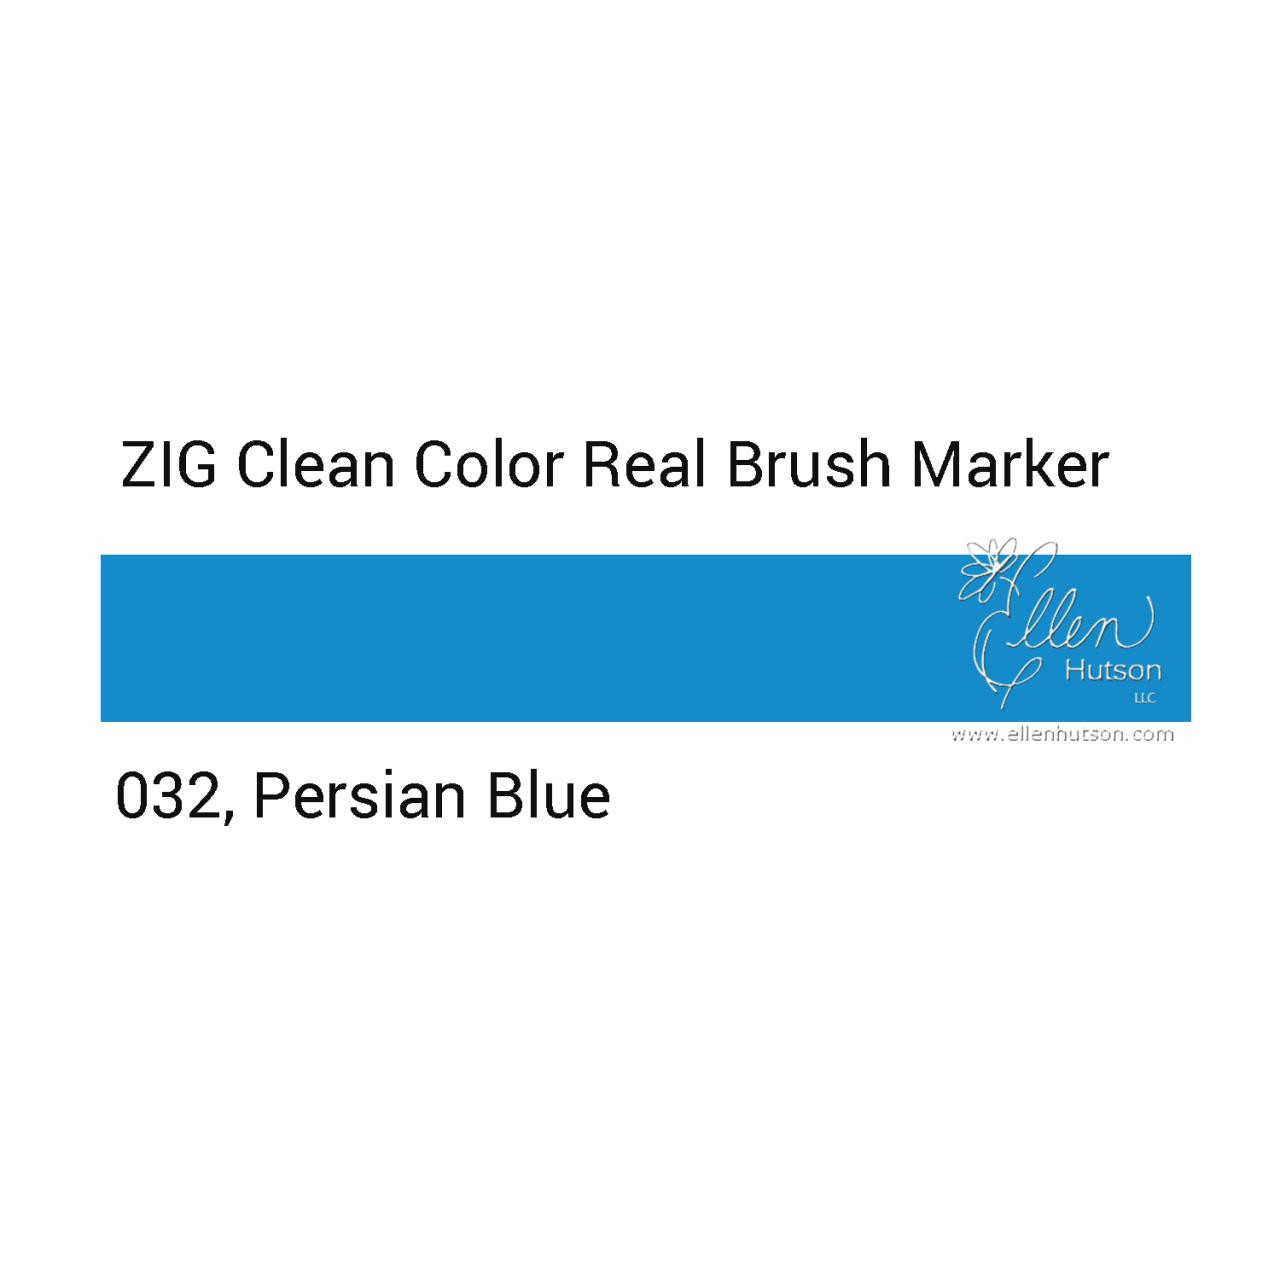 032 - Persian Blue, ZIG Clean Color Real Brush Marker -